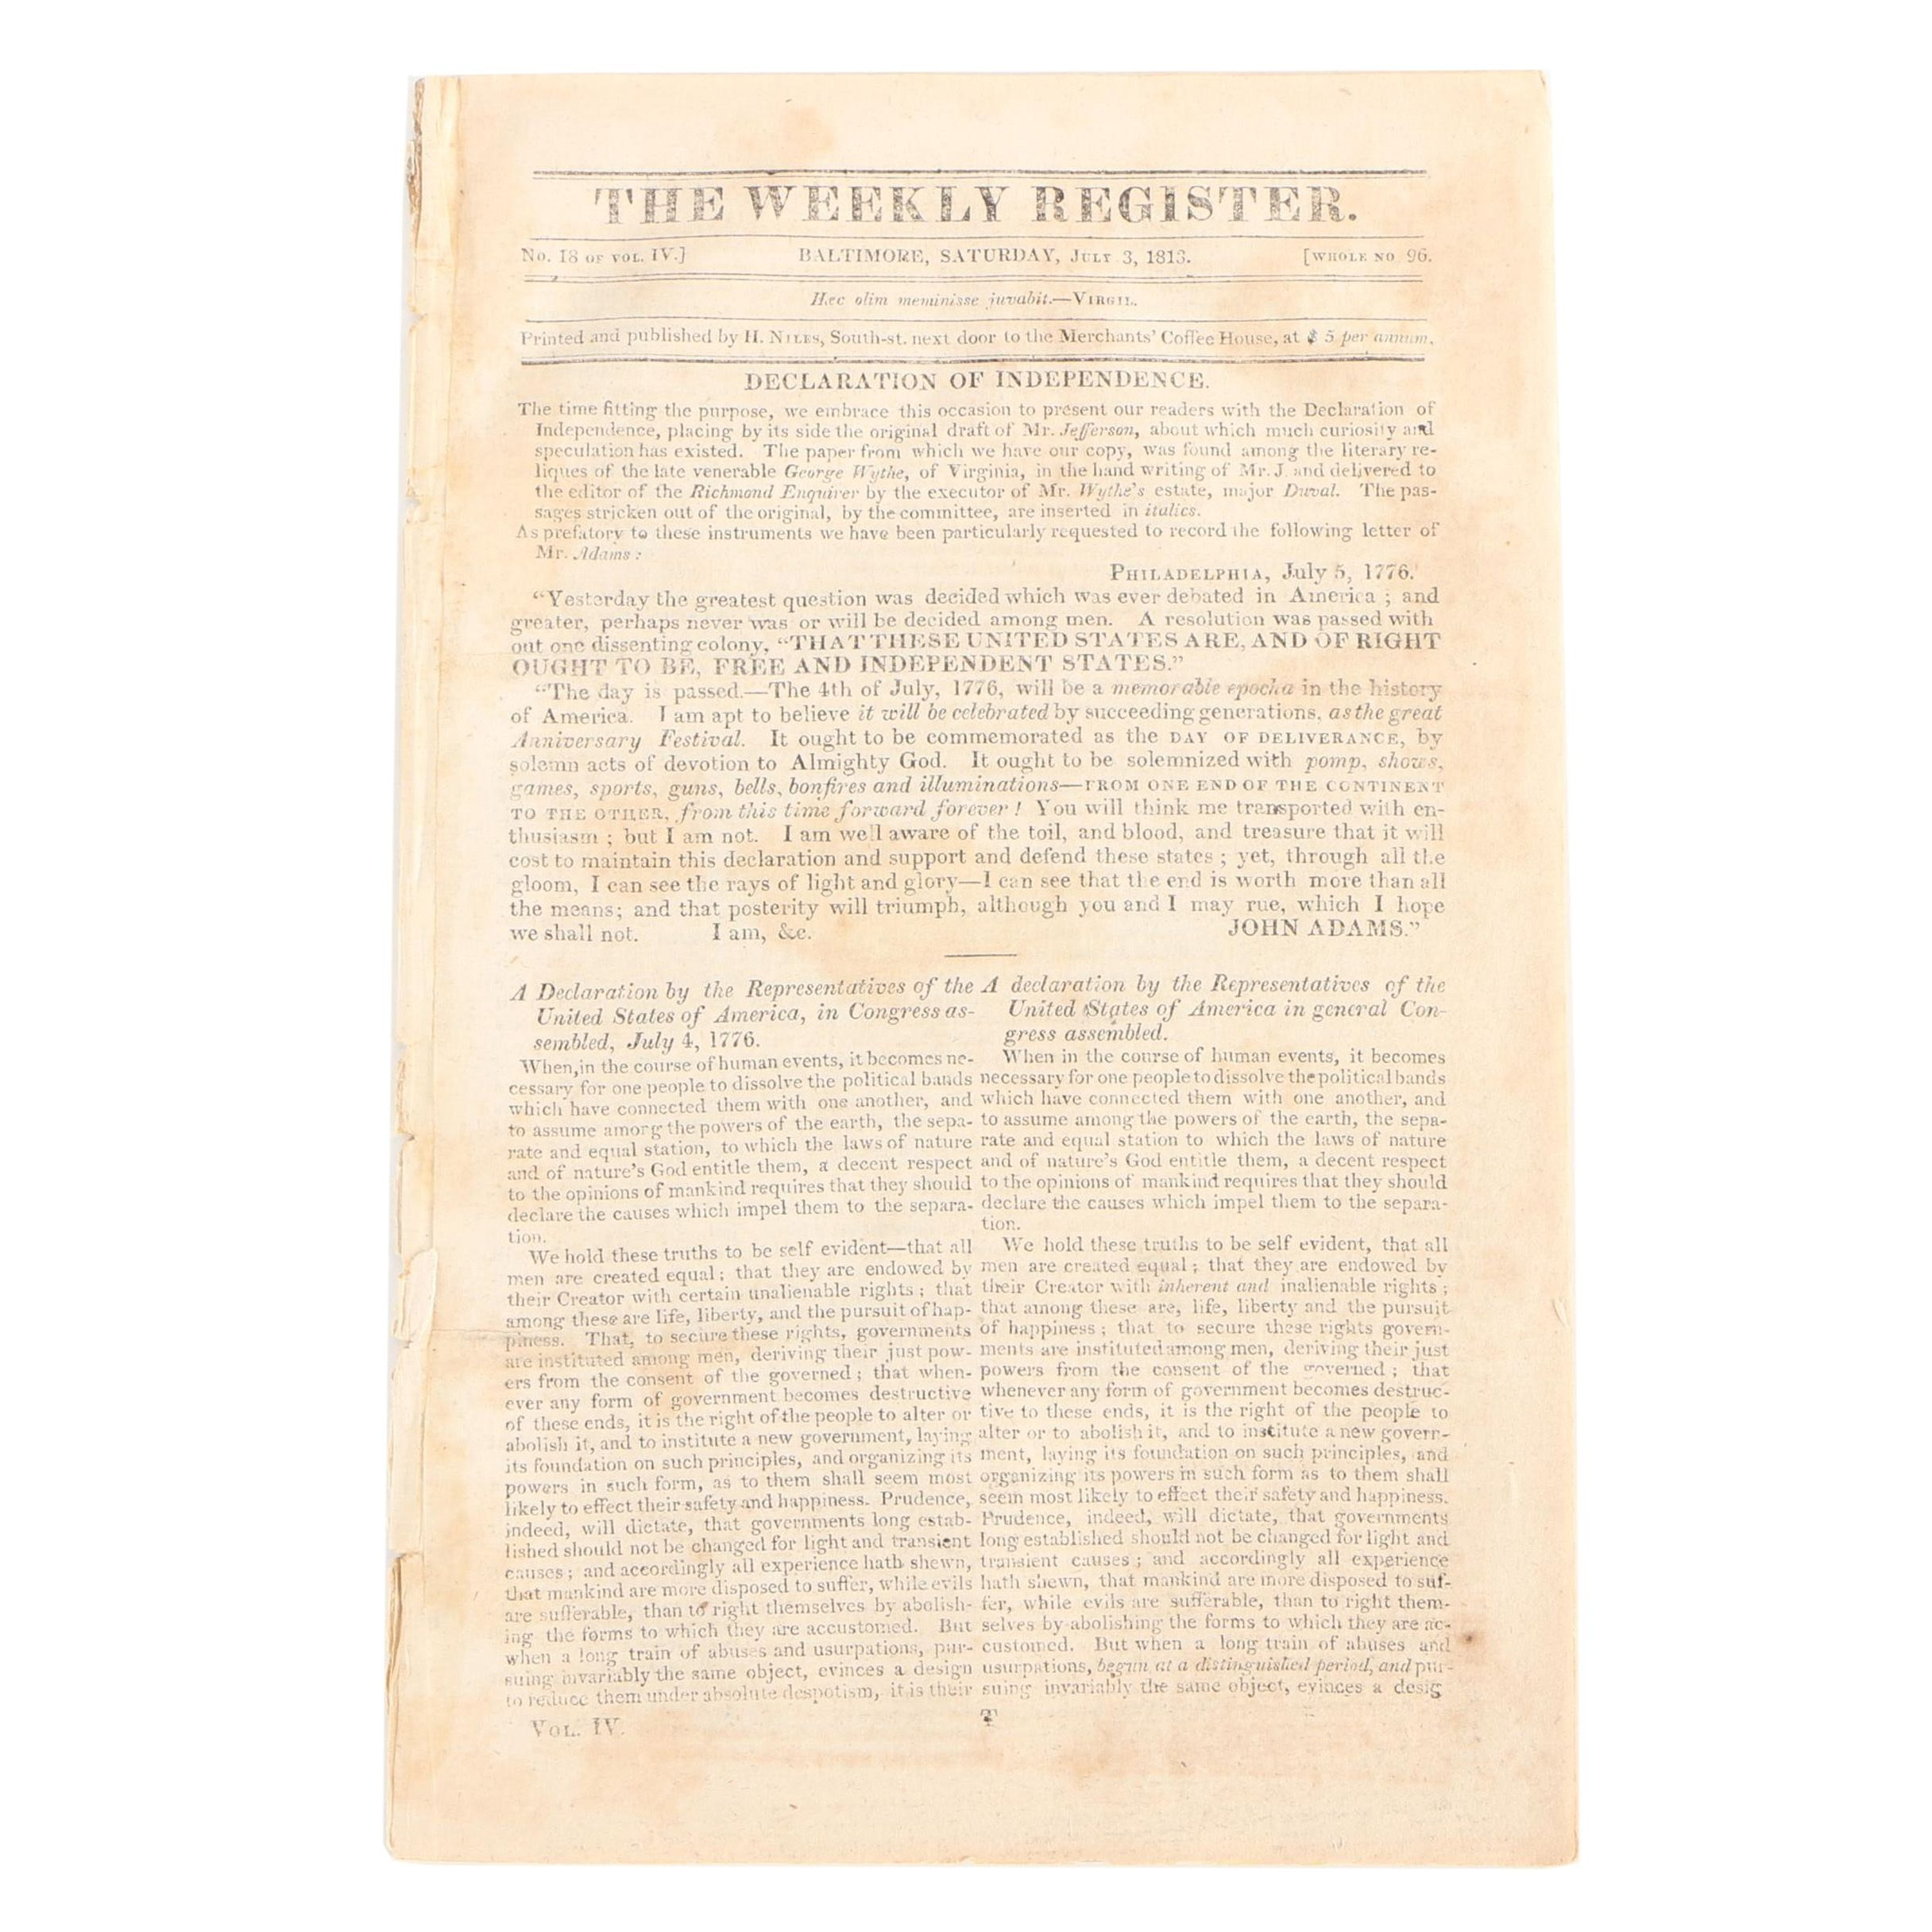 """Early 19th Century """"Weekly Register"""" Printing of the Declaration of Independence"""